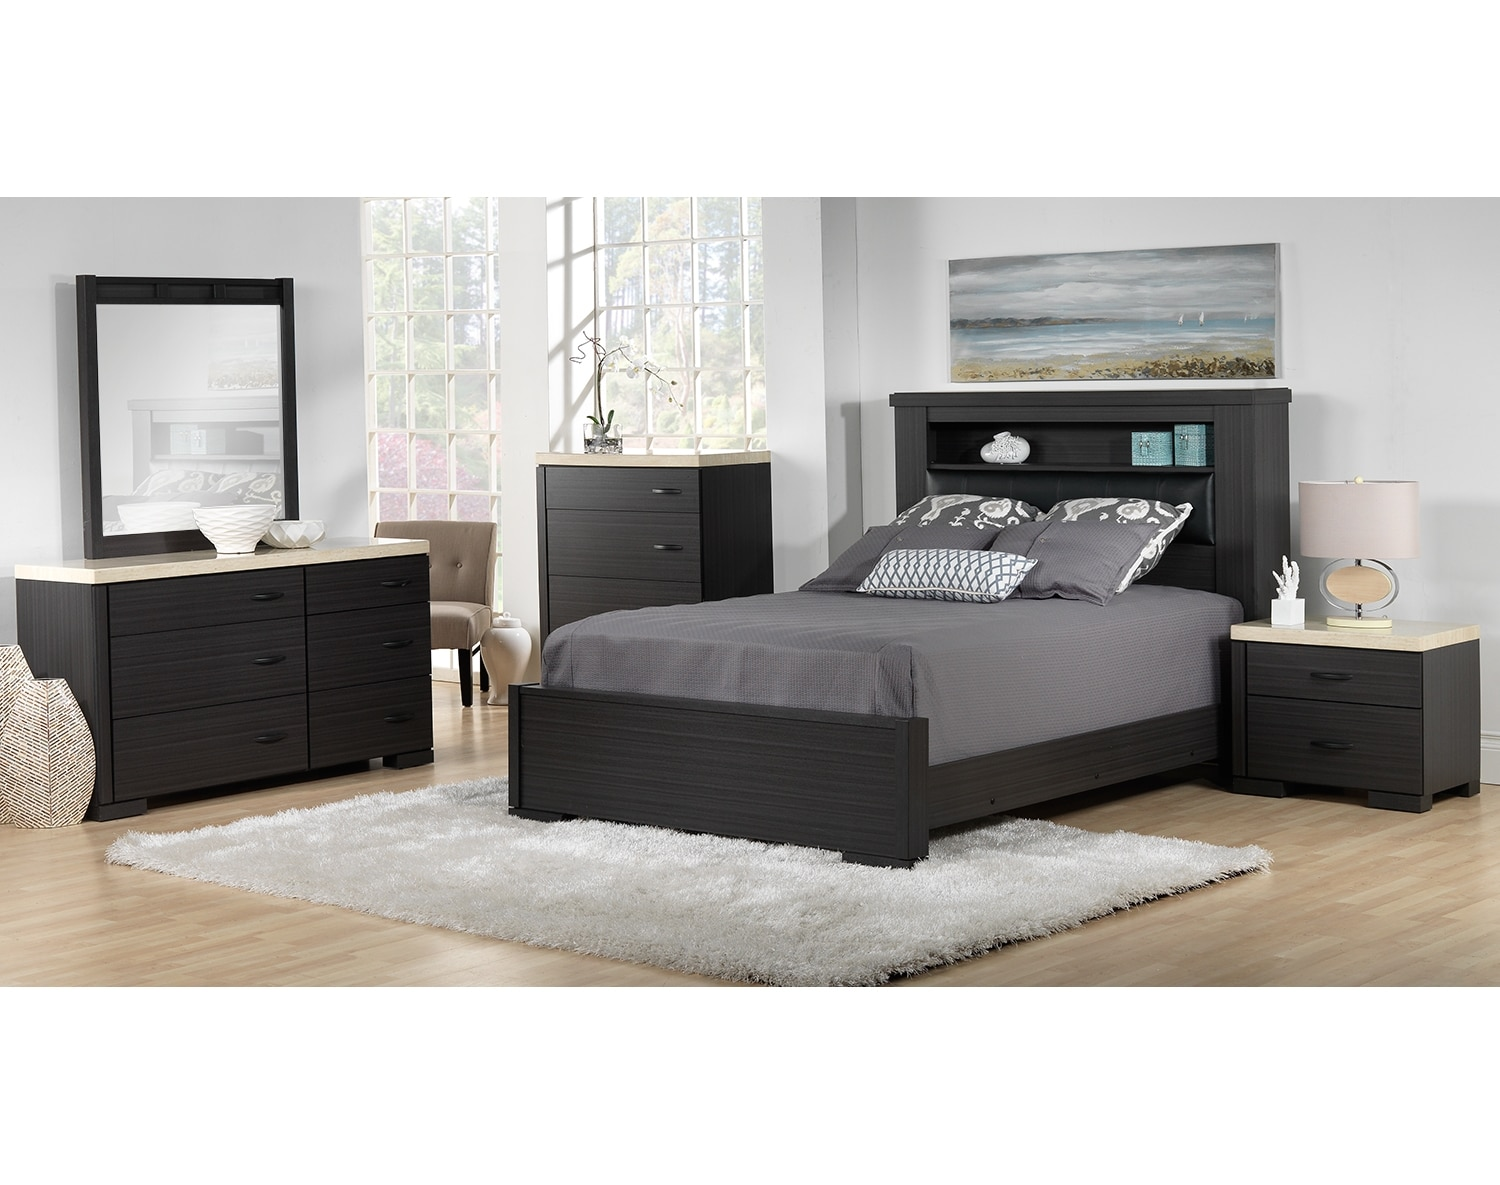 furniture for condo living. santee 5piece king bedroom set charcoal u0026 white furniture for condo living